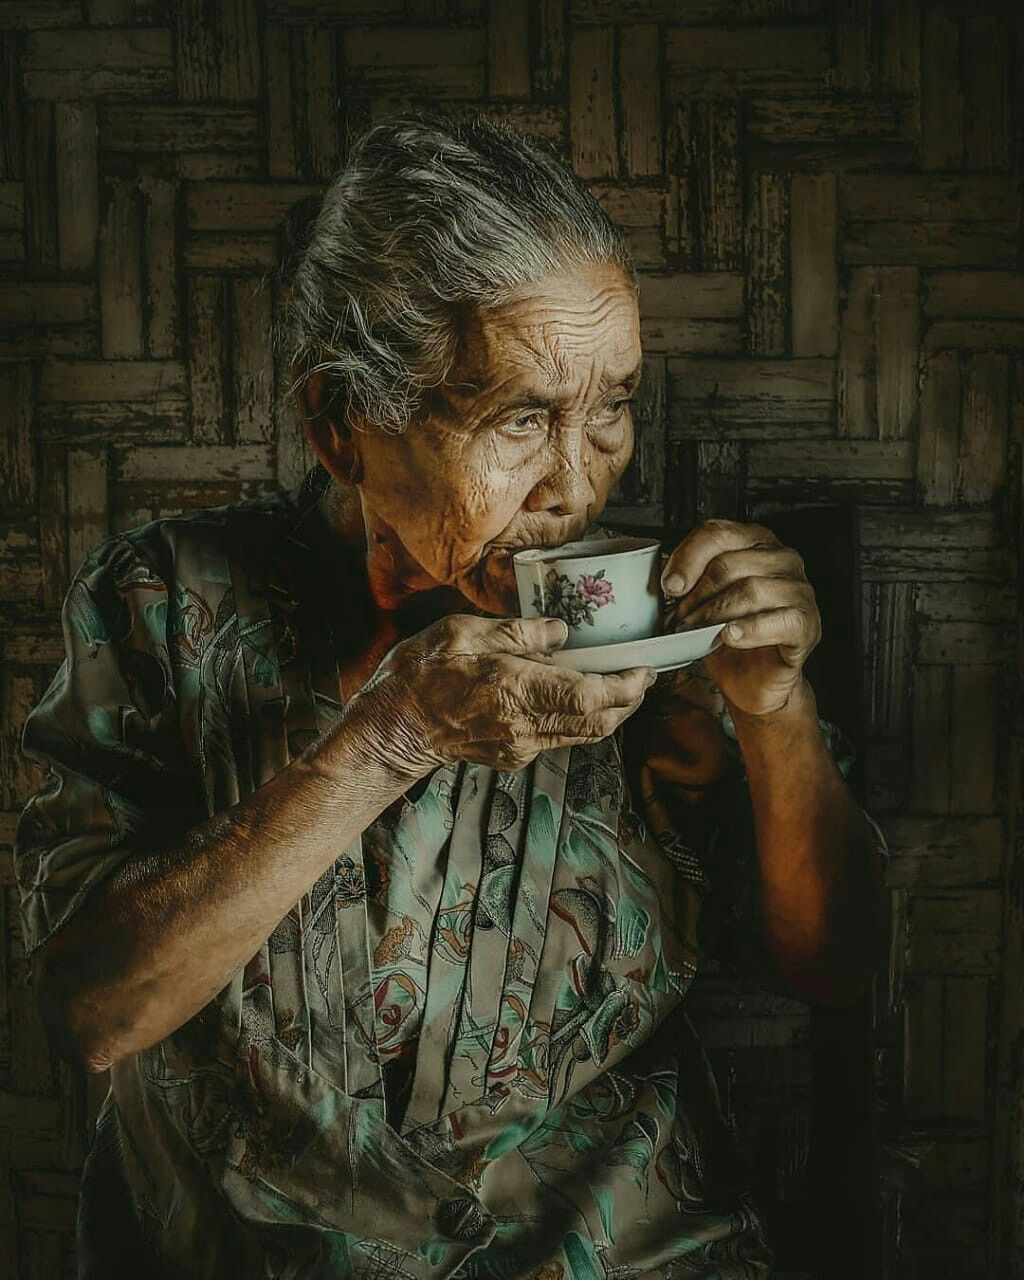 Pin oleh Risti Ernawati di Asian paintings Lukisan wajah